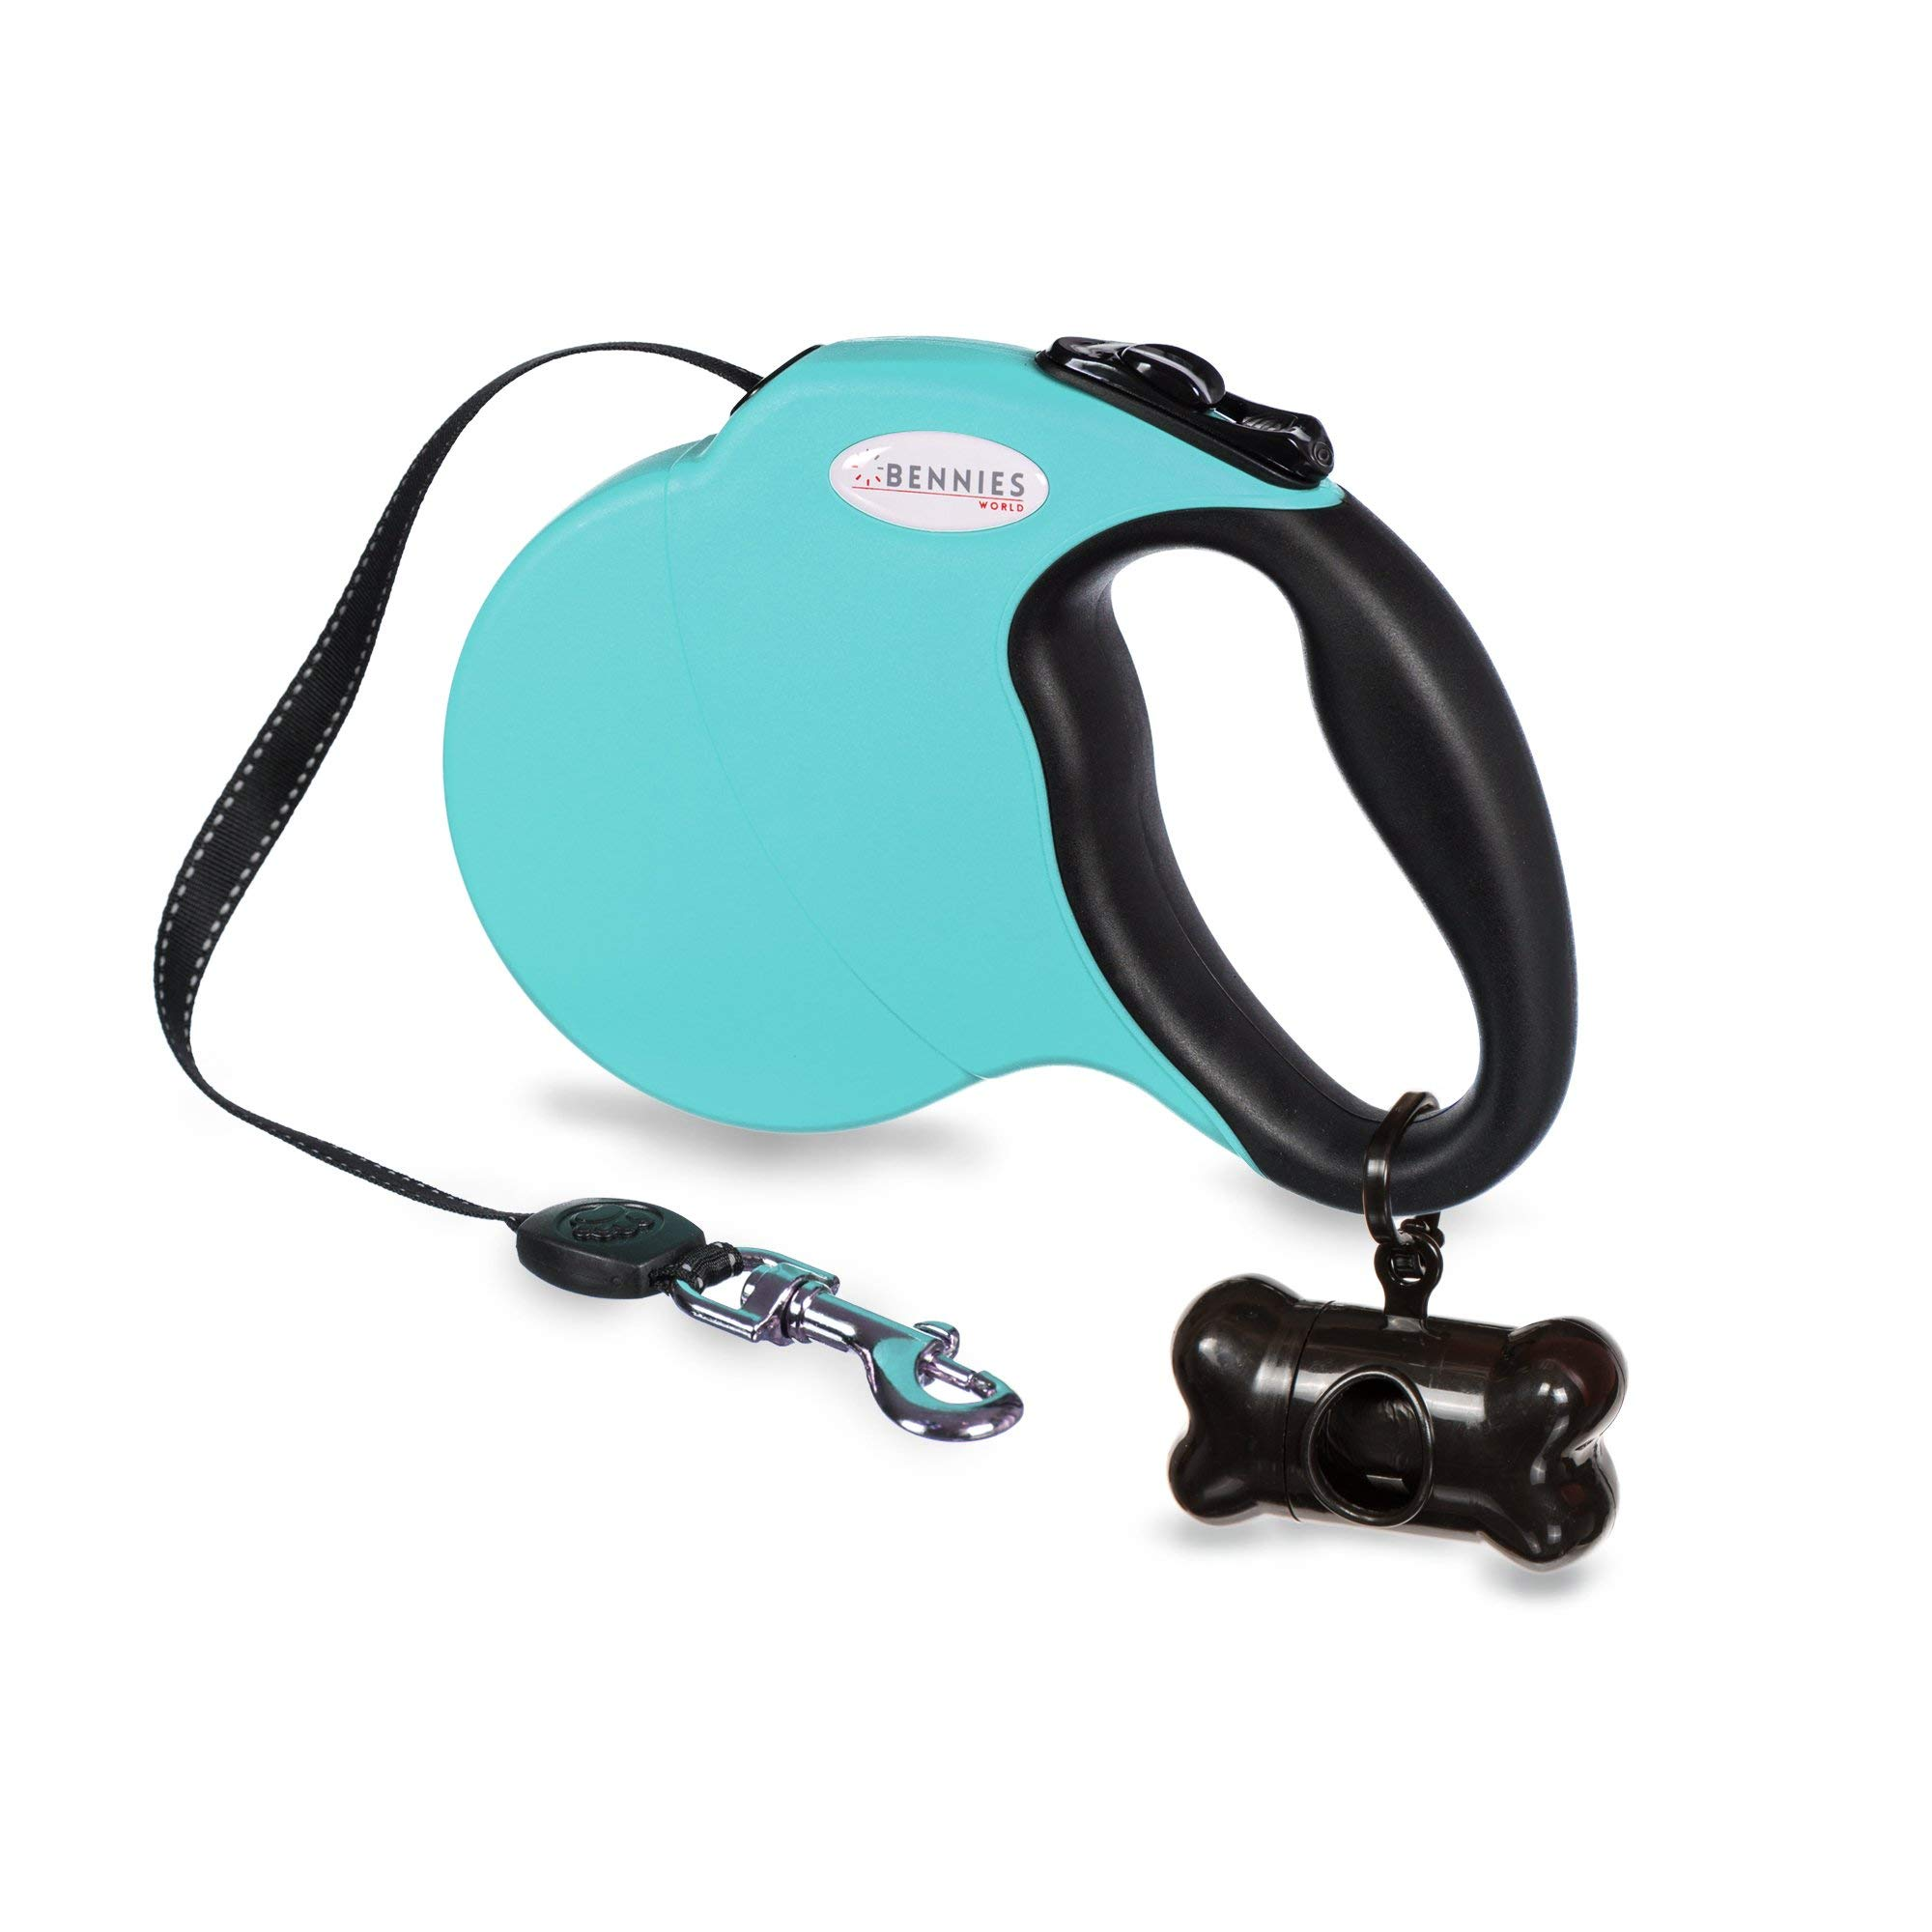 Bennies World 16 ft Retractable Dog Walking Leash for Large Medium Small Dogs up to 110lbs, Reflective Ribbon, Break & Lock Button, Waste Dispenser and Bags